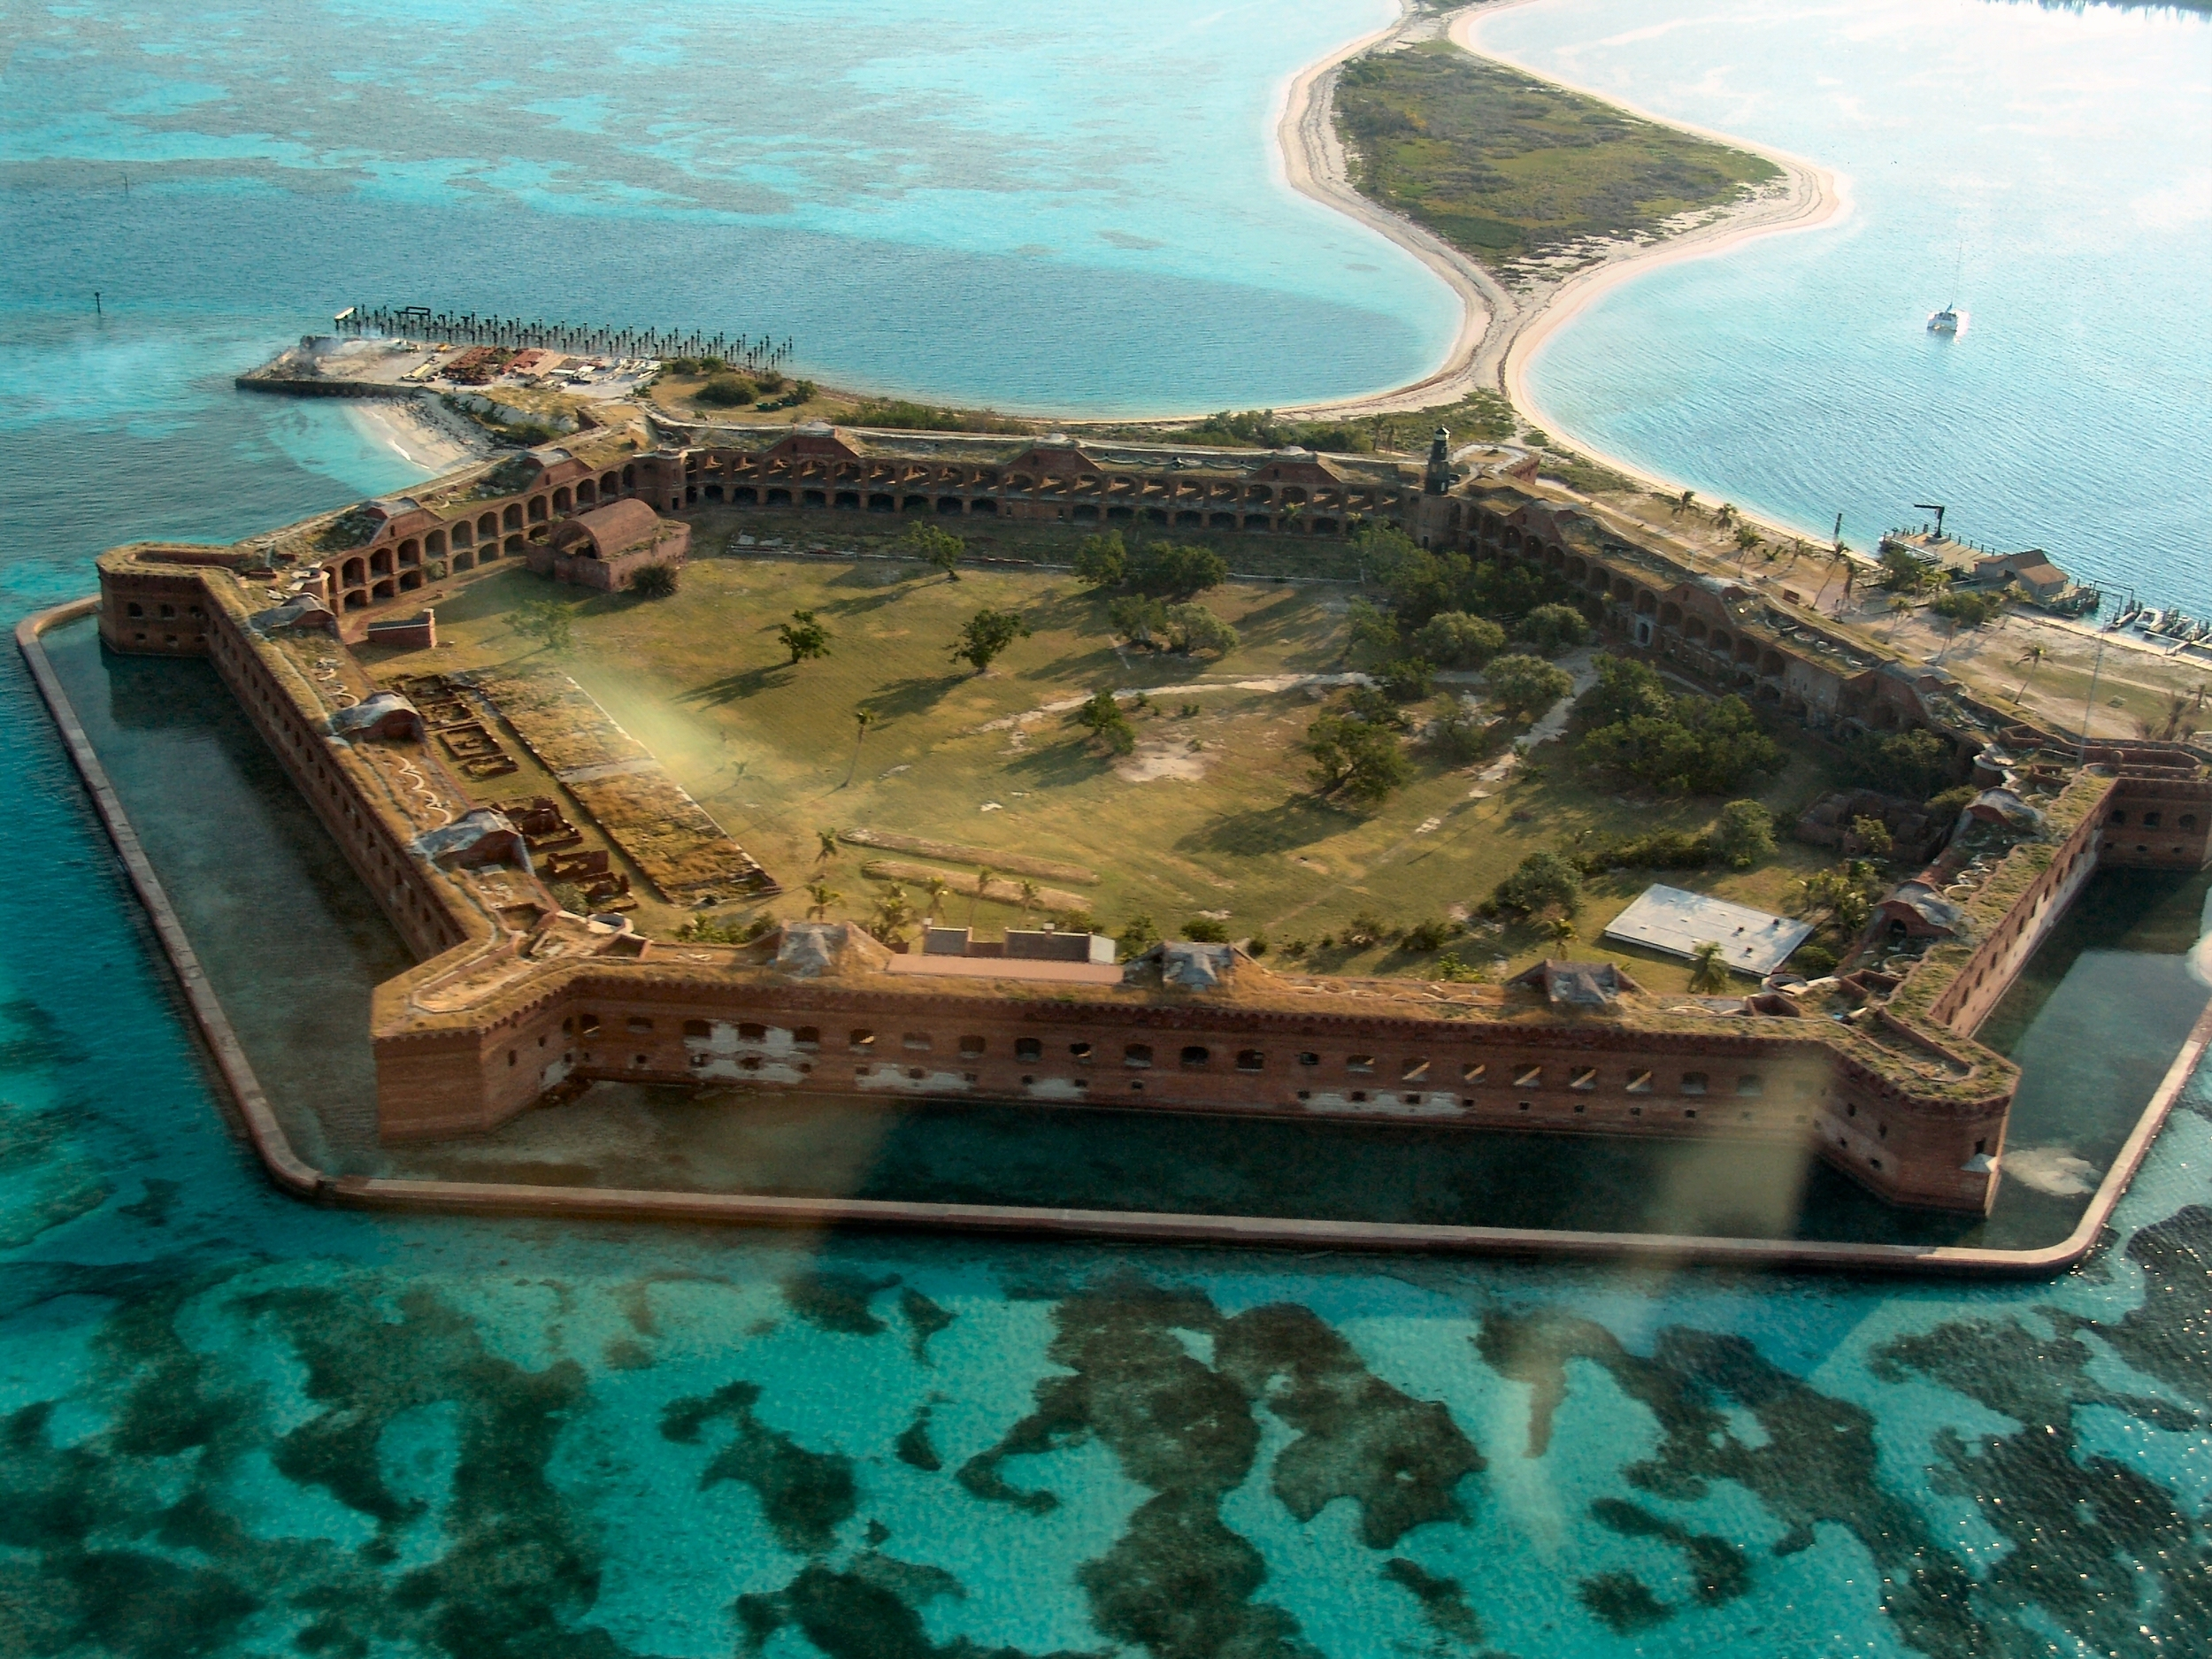 Aerial view of fort jefferson – (PHOTO: Thomas Barrat/SHUTTERSTOCK)